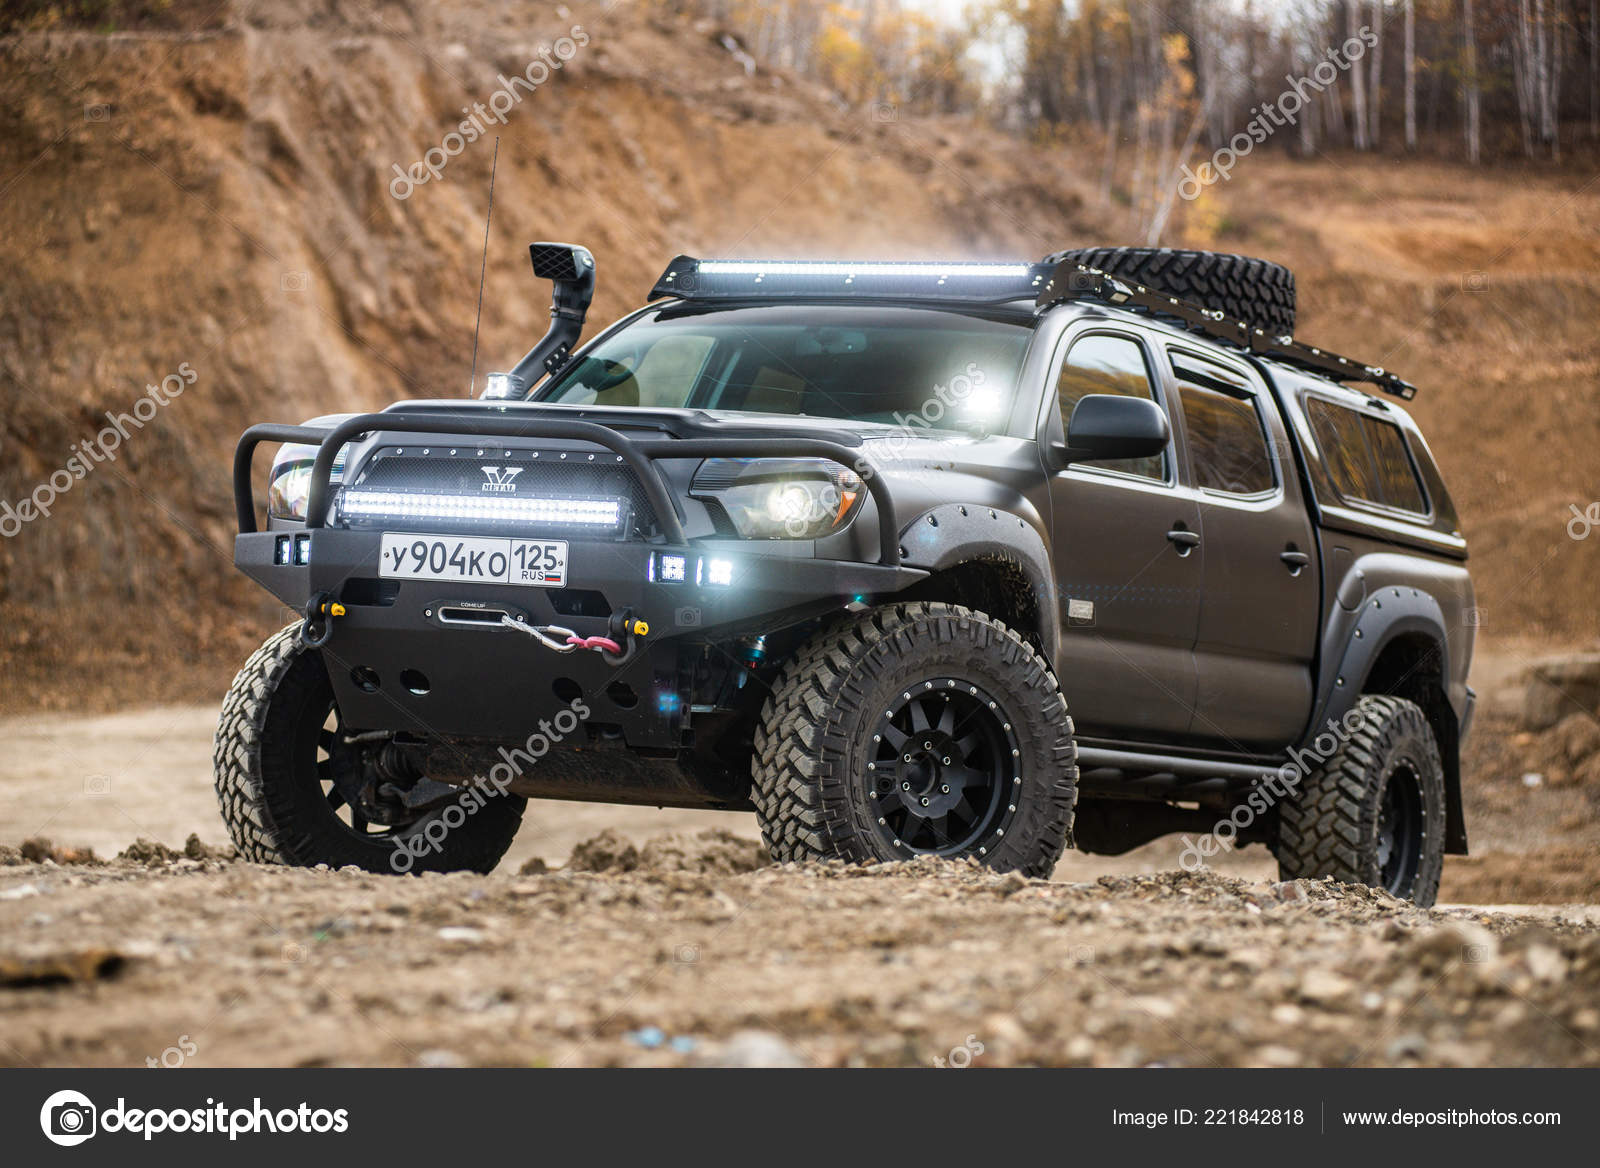 Khabarovsk Russia October 7 2018 Toyota Tacoma Quick Ride On A Offroad Stock Editorial Photo C Alex S 221842818